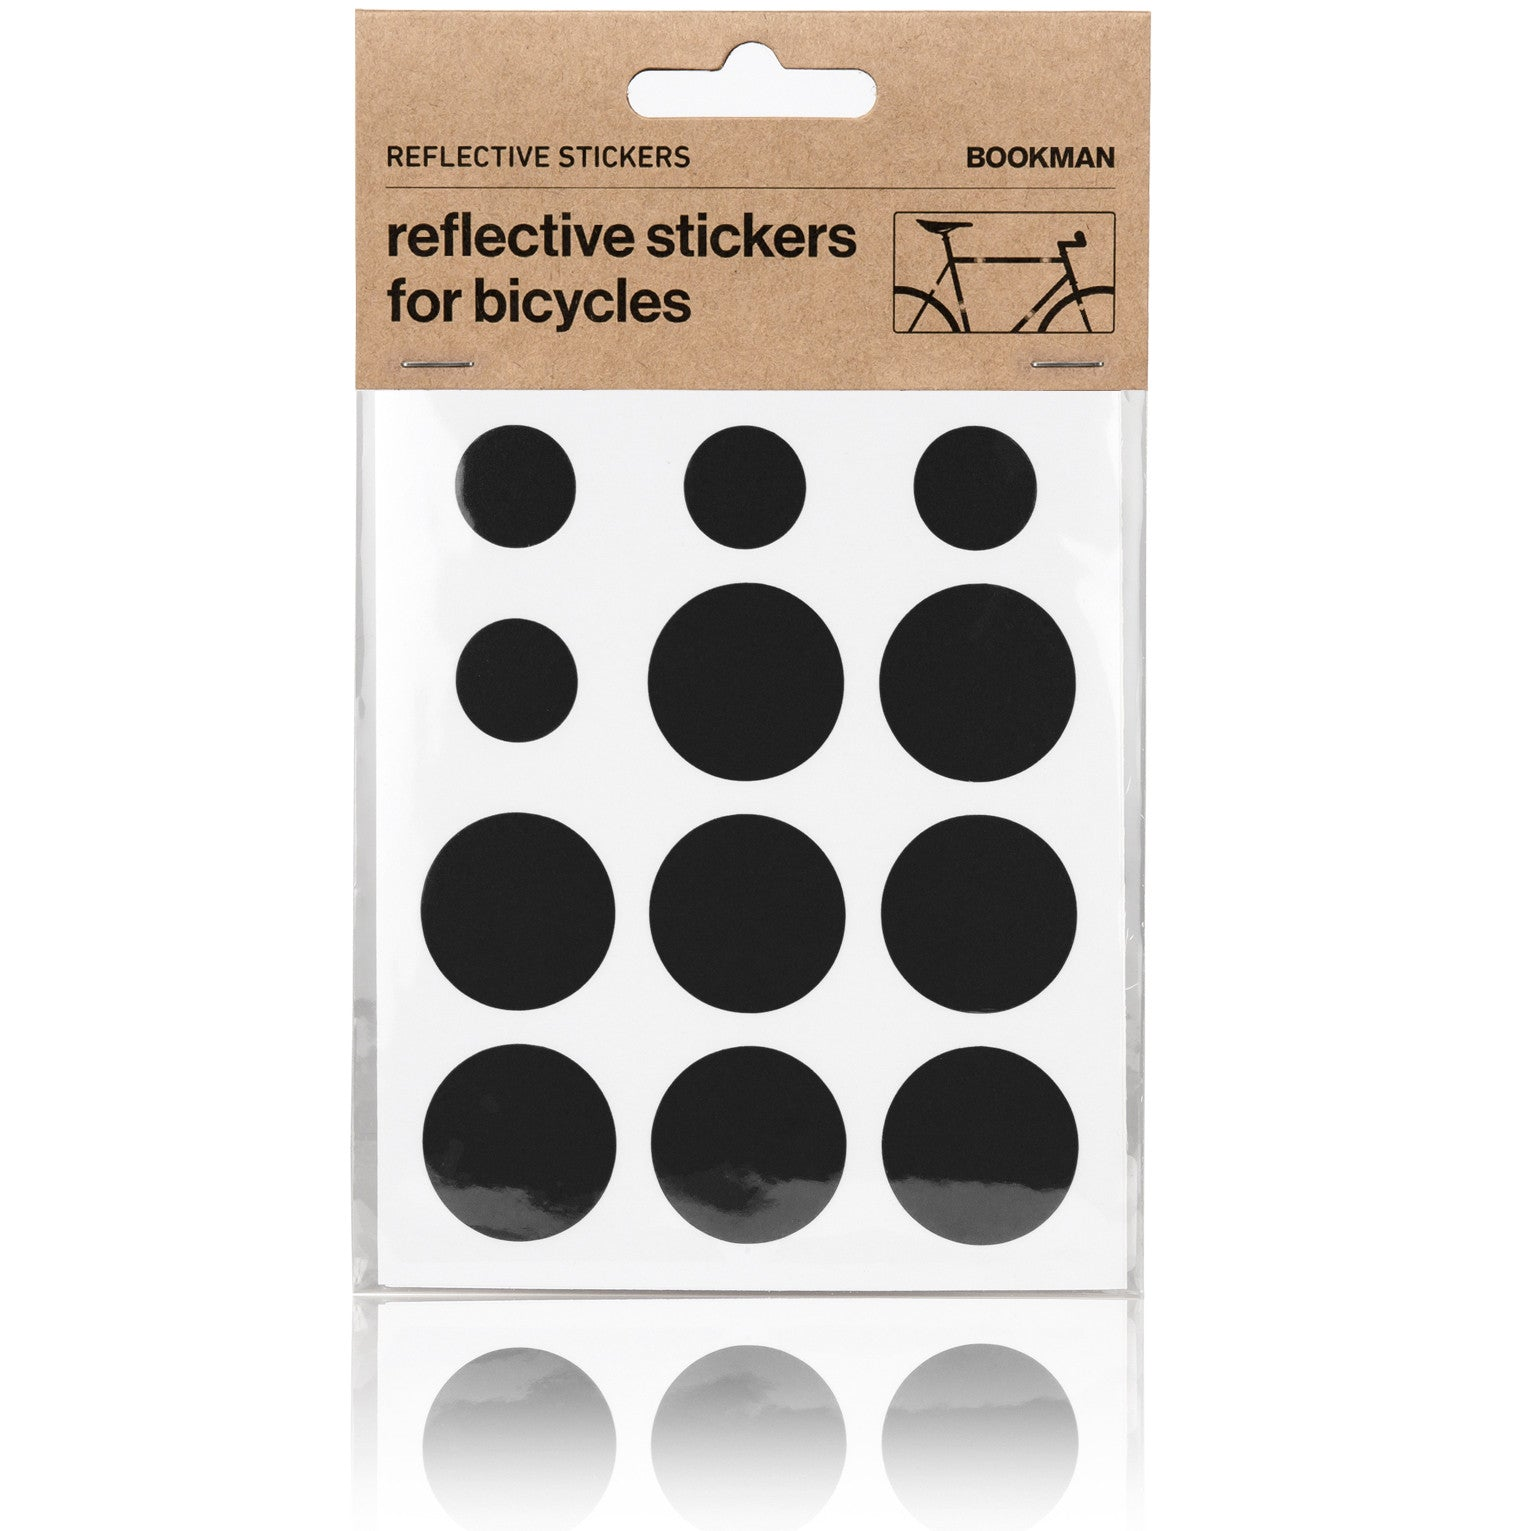 Reflective Dots Stickers for Bikes - Black | BOOKMAN